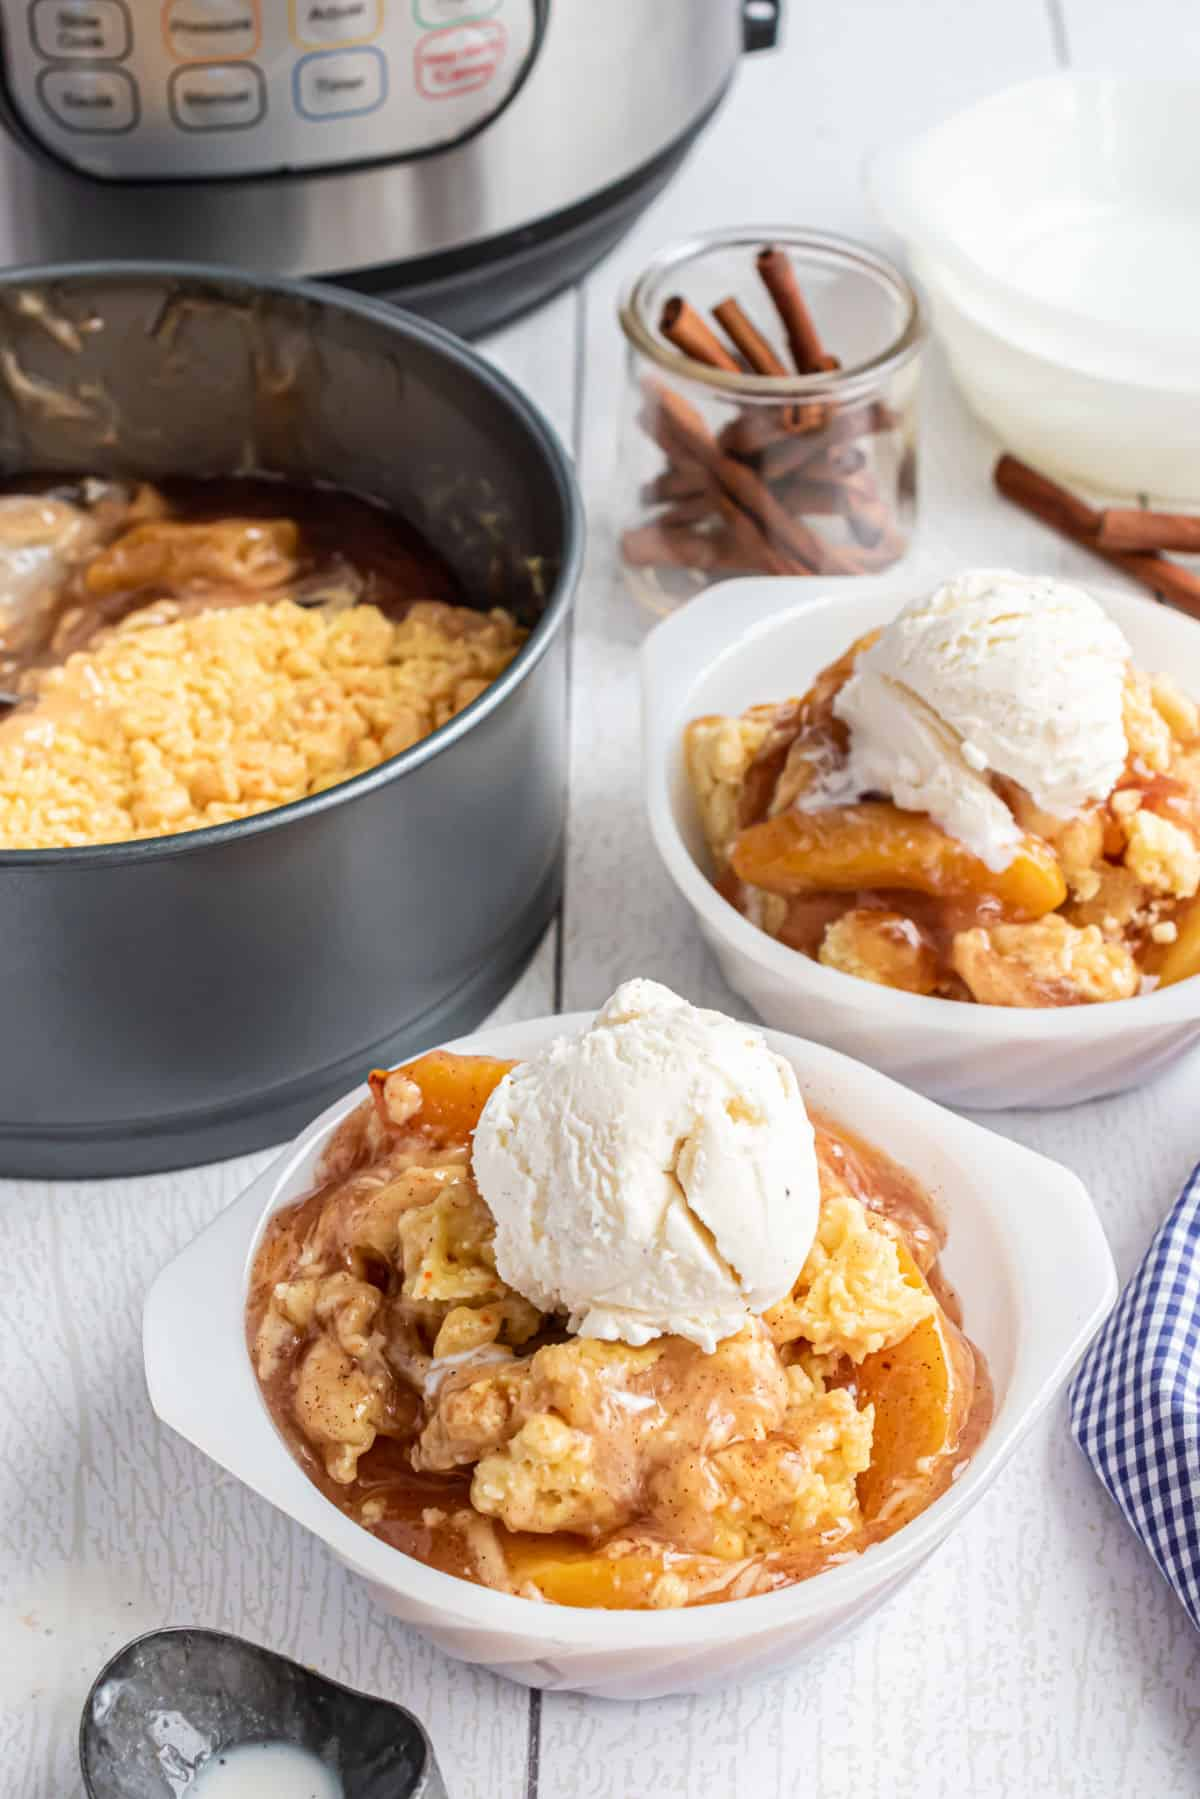 Peach cobbler made in the pressure cooker and served in a white bowl with vanilla ice cream.